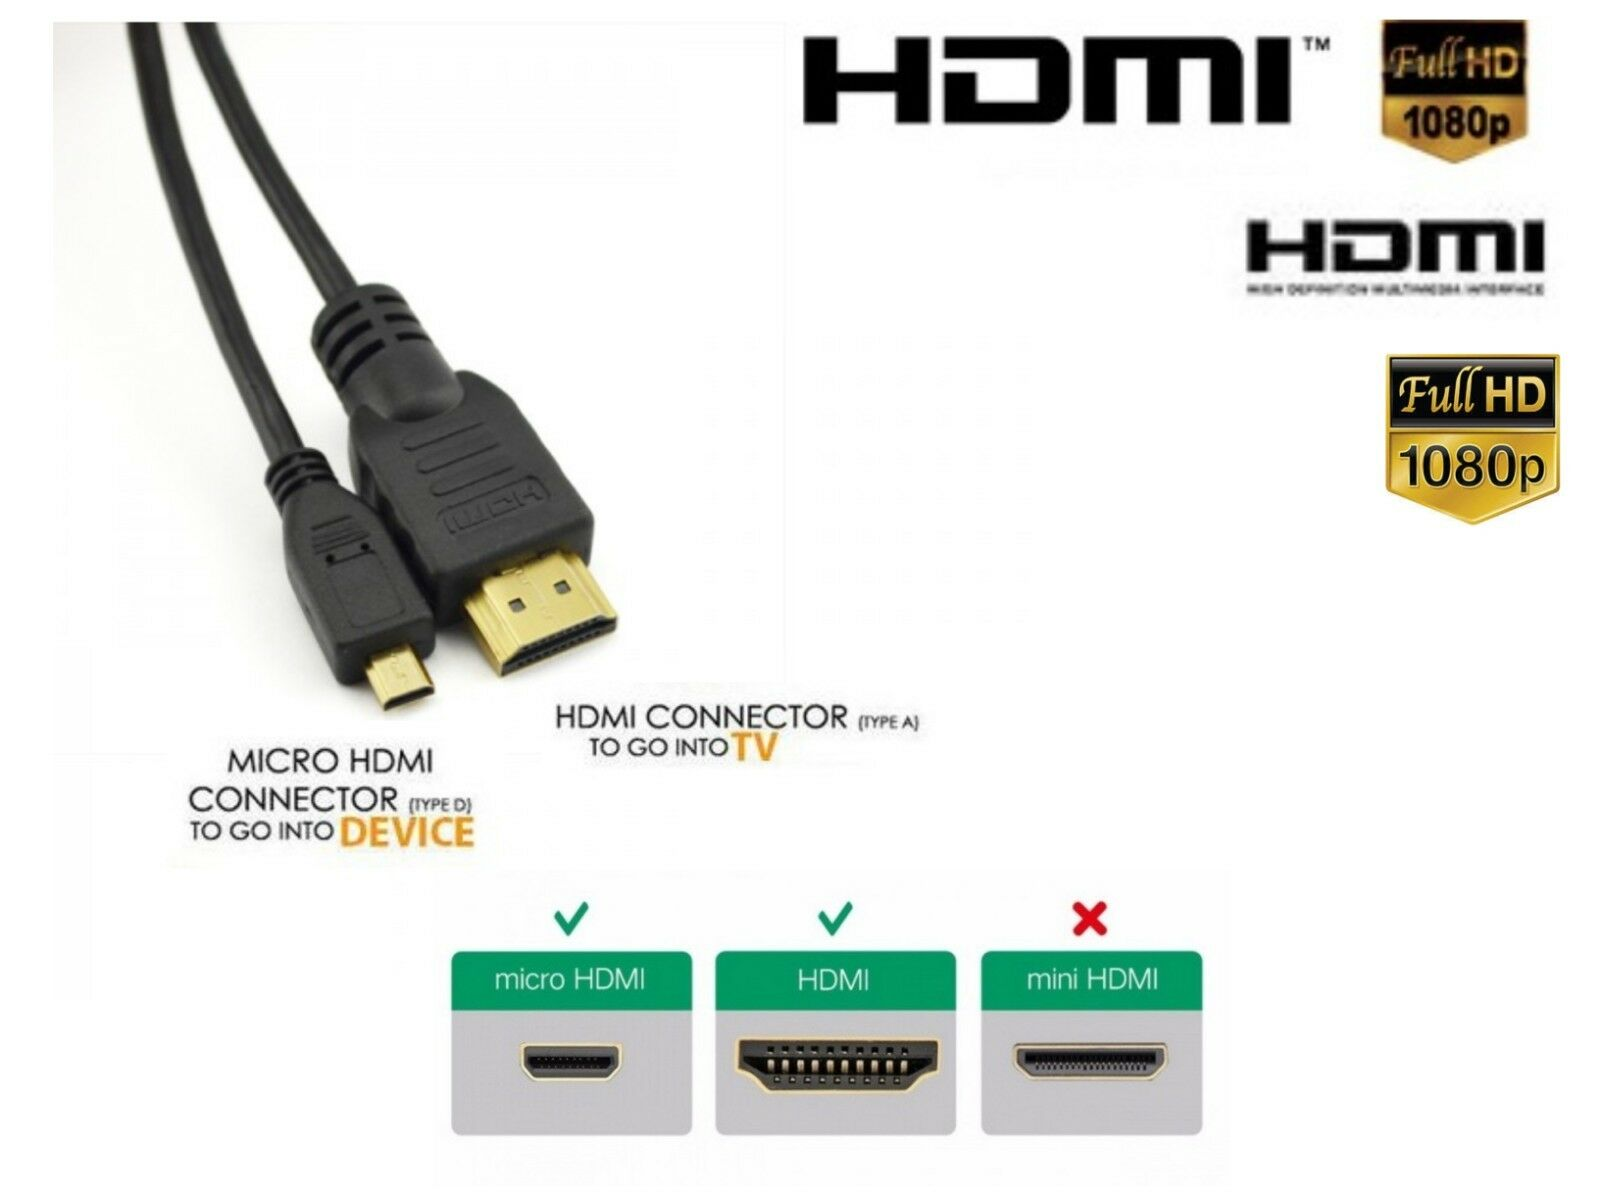 SONY HANDYCAM HDR-PJ240E MICRO HDMI TO HDMI VIDEO OUT CABLE FOR TV 3D 4K zu78